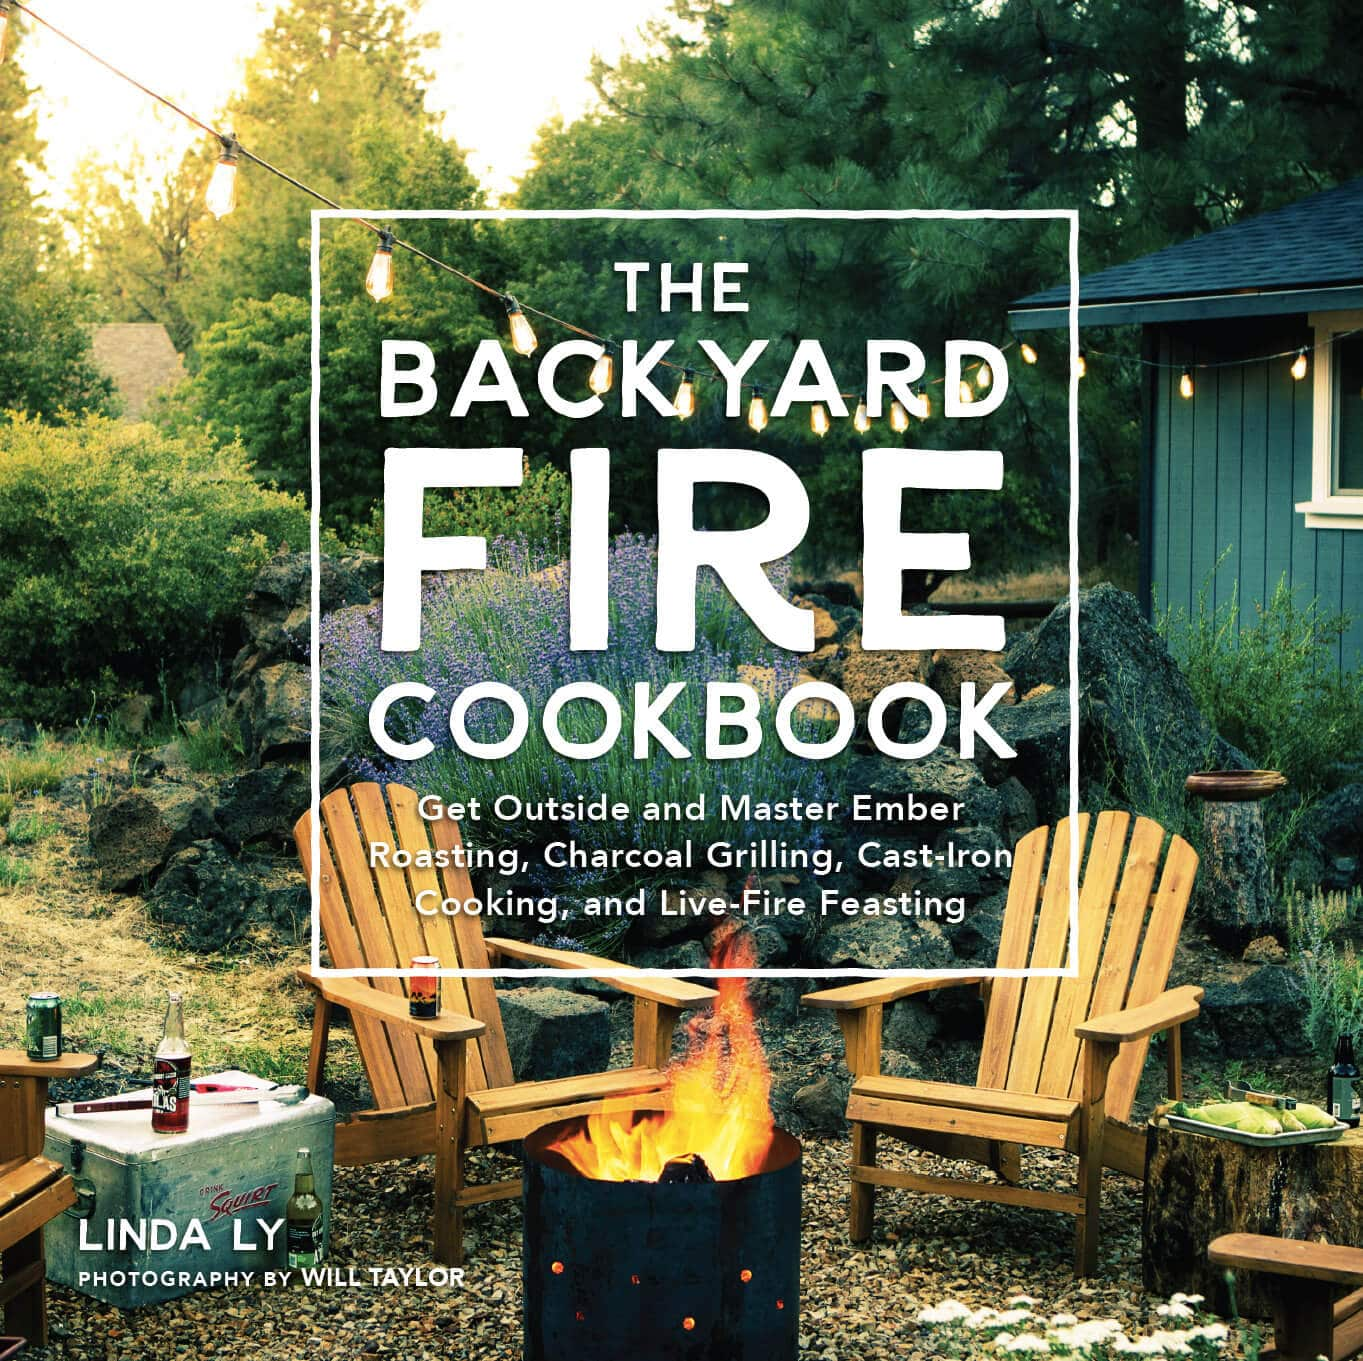 The Backyard Fire Cookbook is now available for preorder